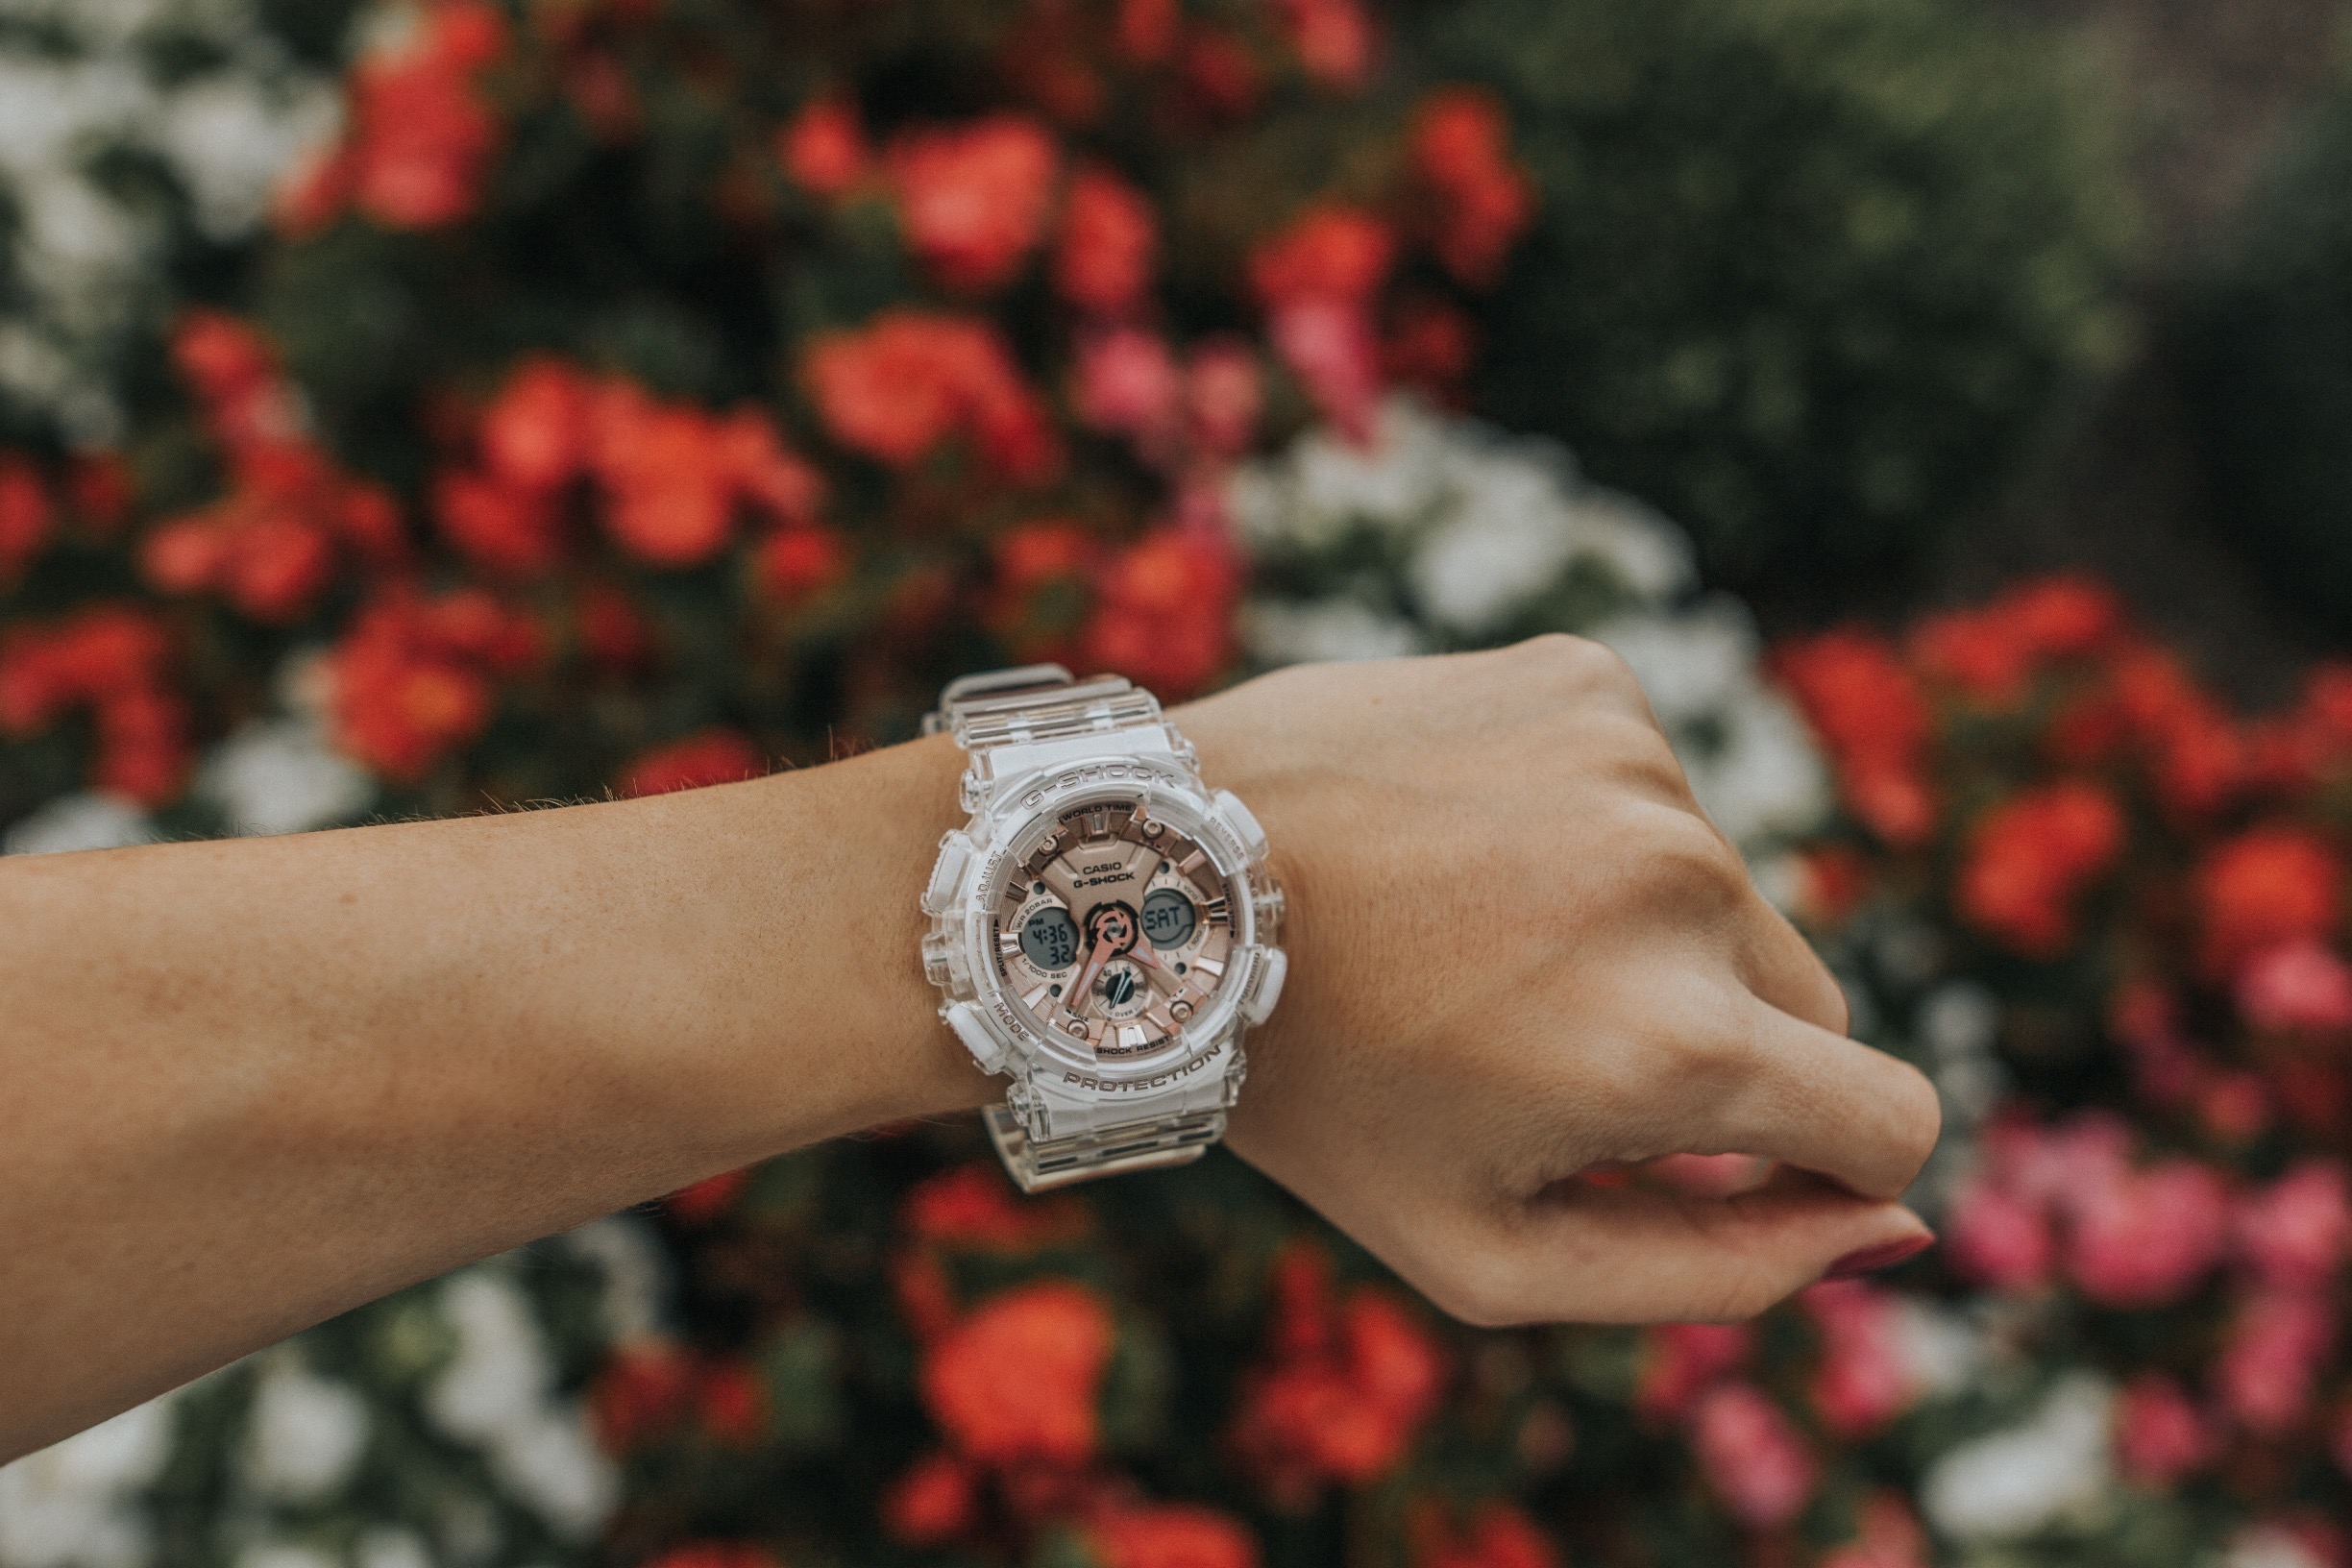 G-Shock Women's Watch Rose Gold Transparent| Water resistant Watch